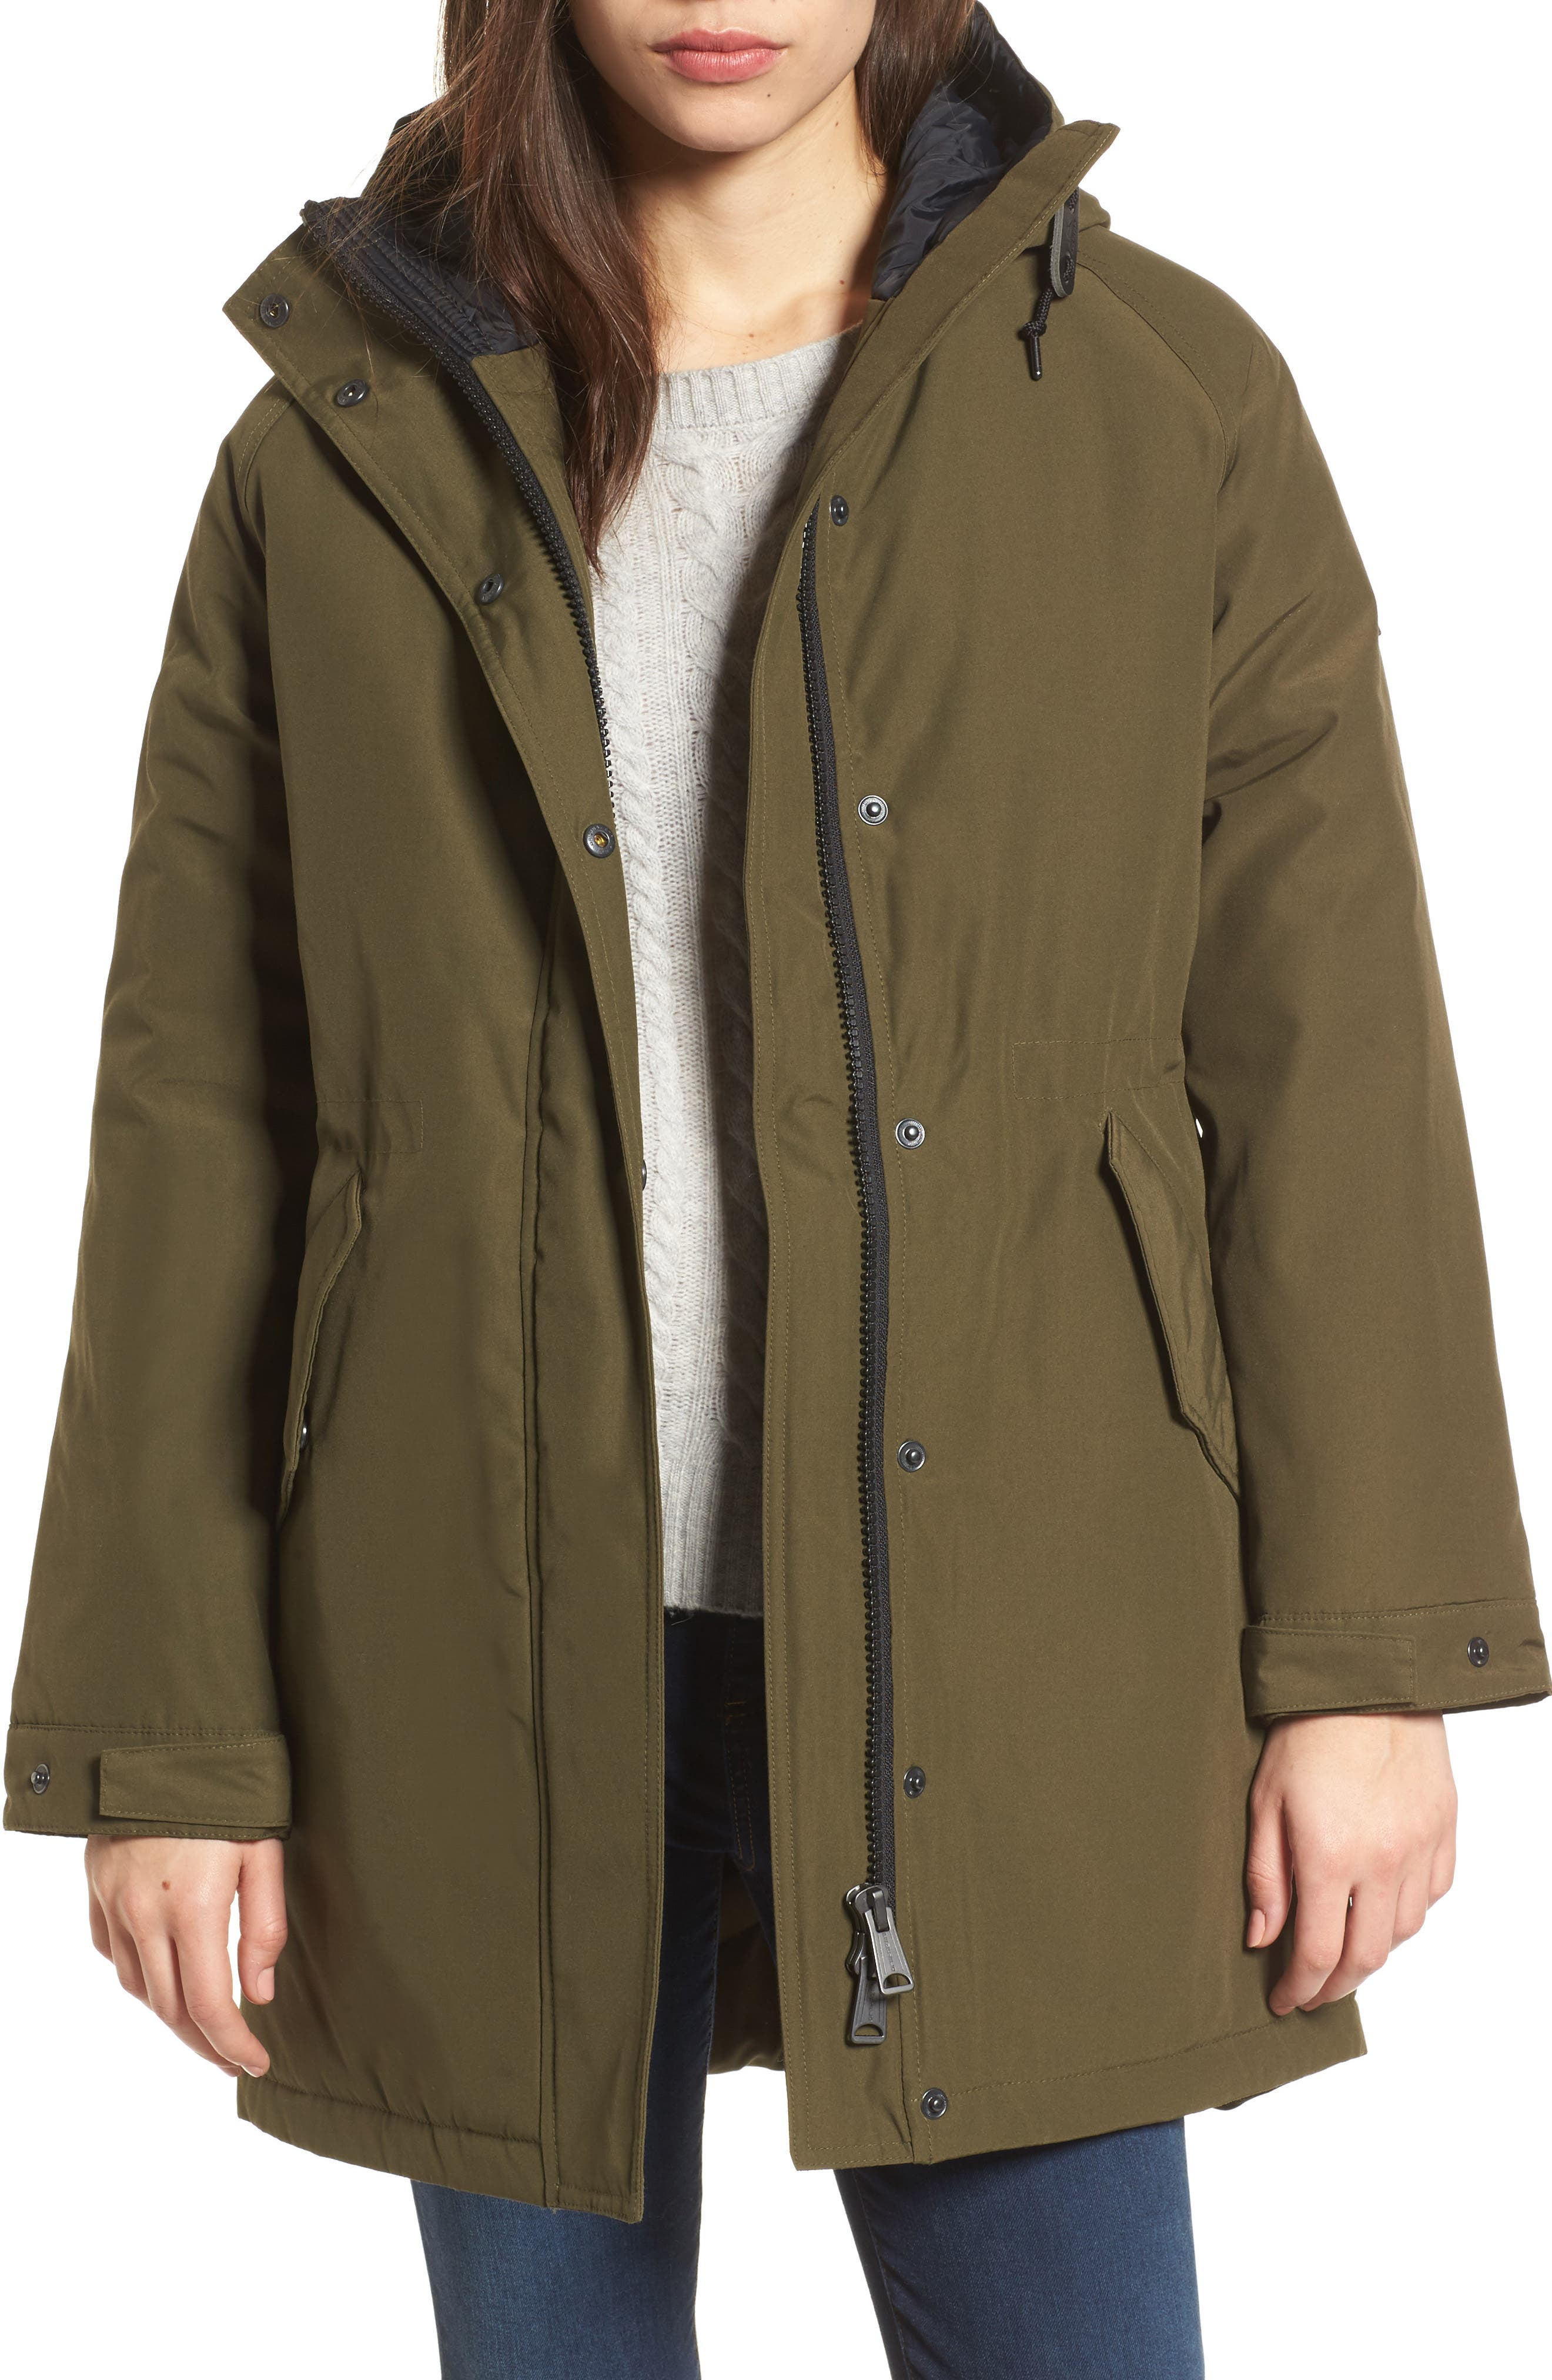 Kingman Hooded Fishtail Parka,                             Main thumbnail 1, color,                             307